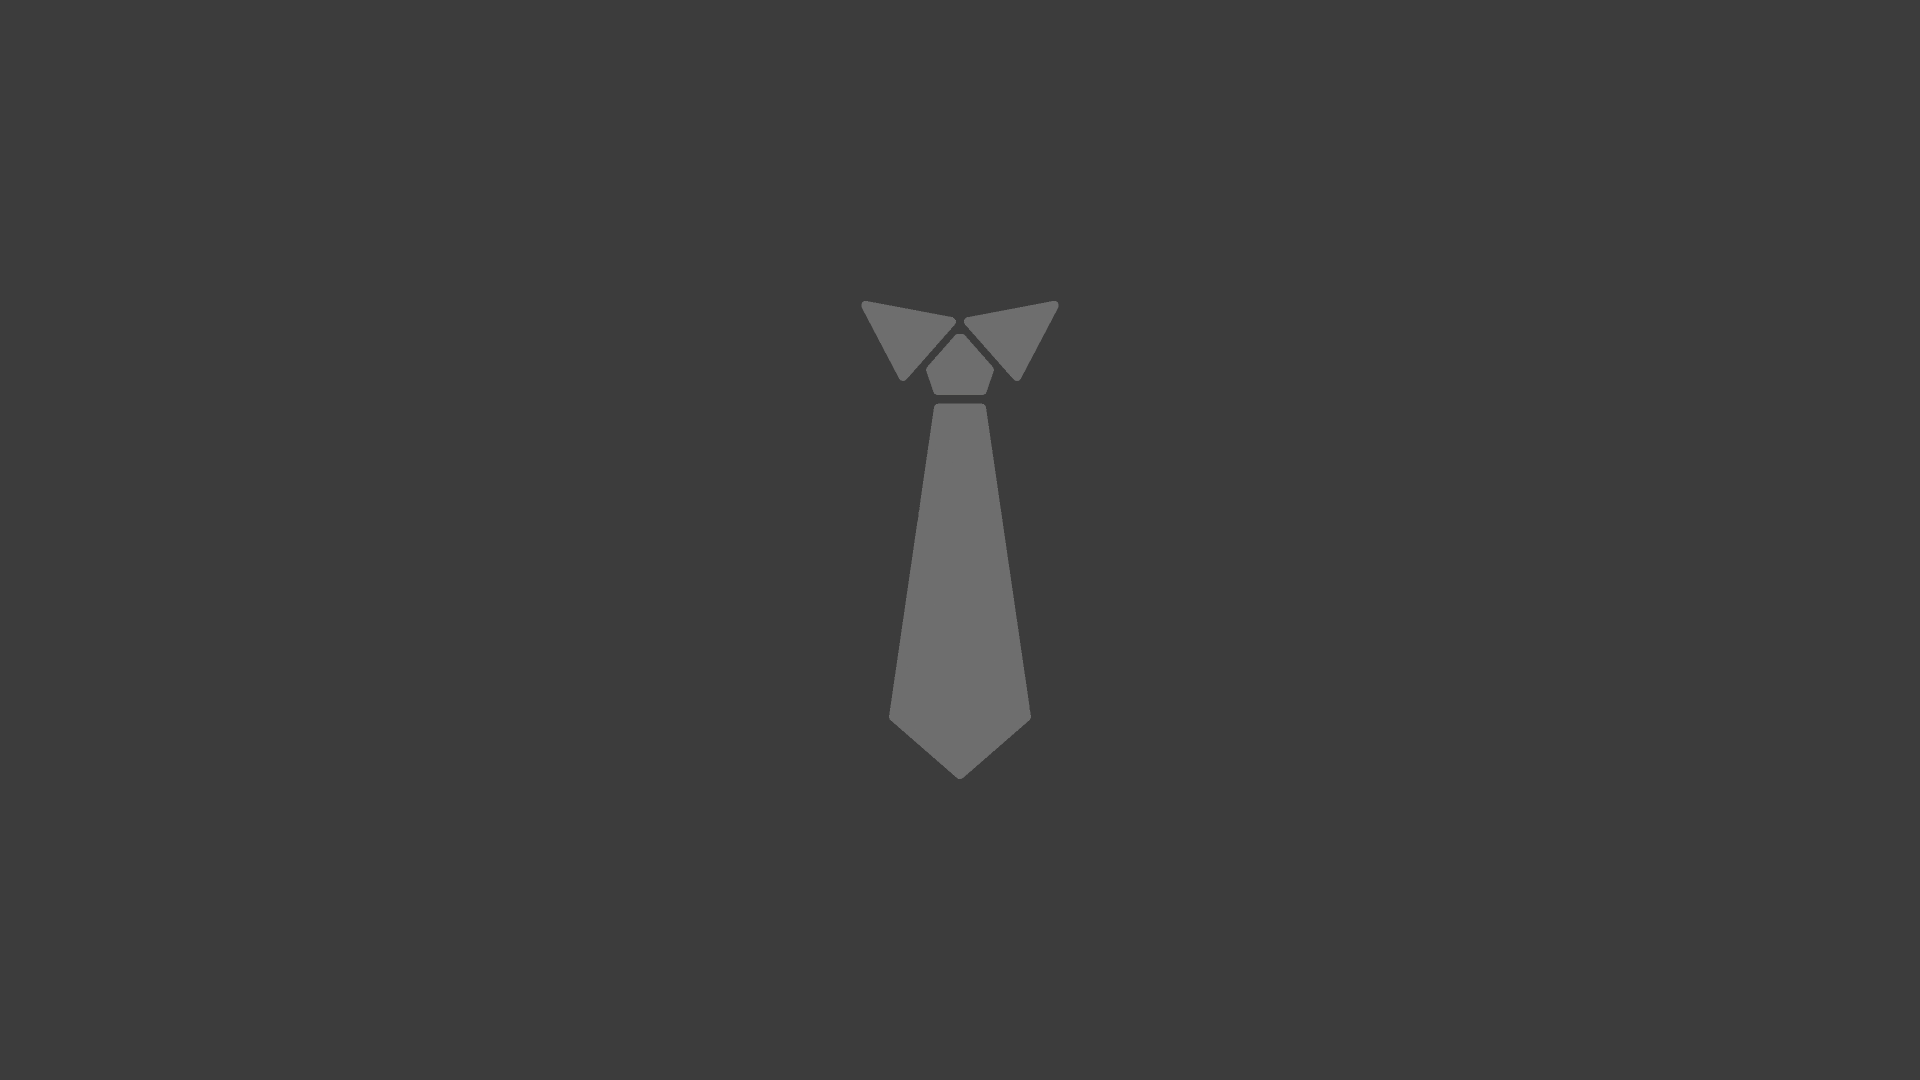 tie minimalism hd artist 4k wallpapers images